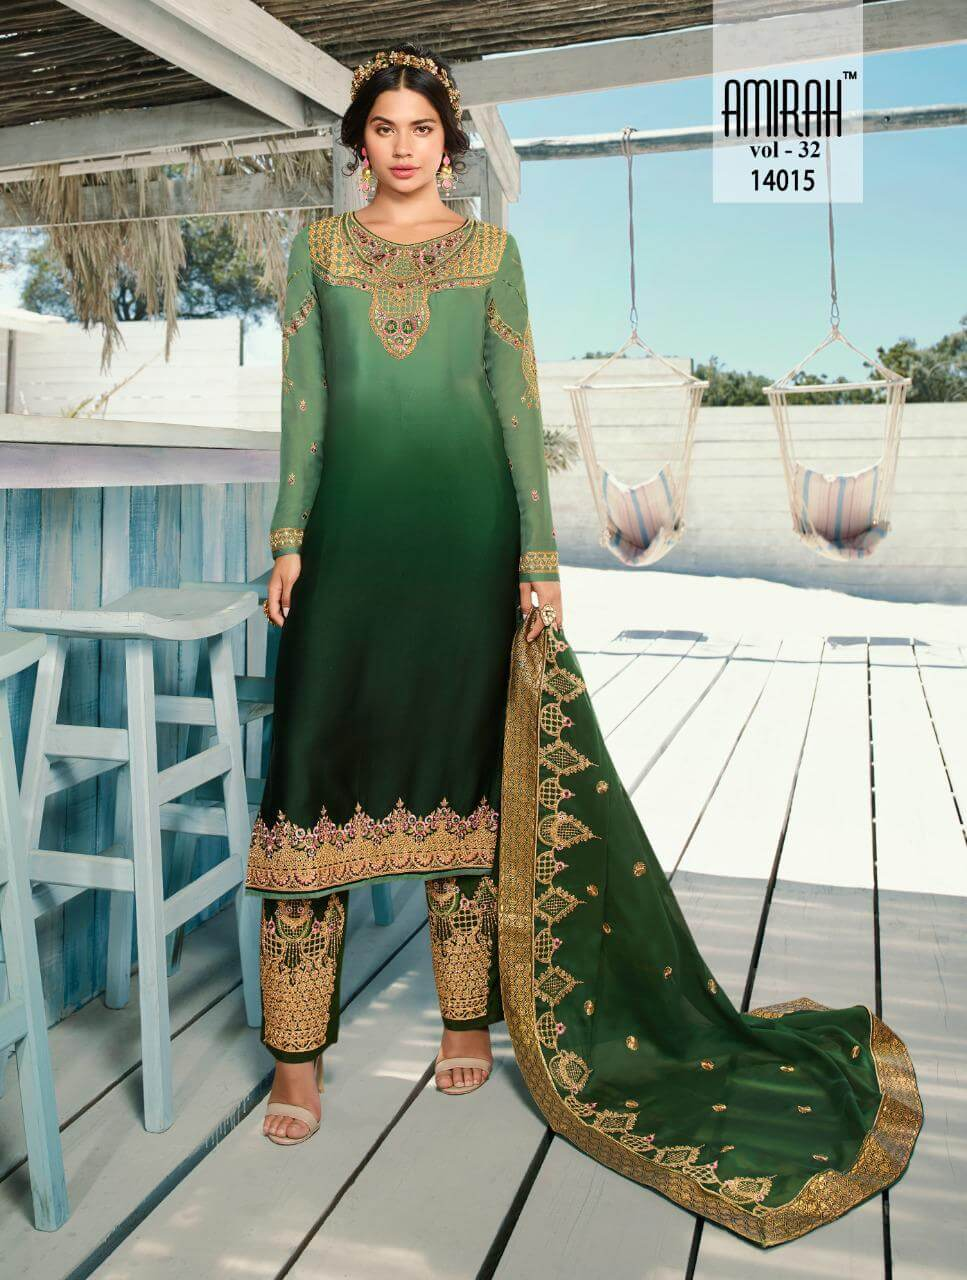 Amirah Vol 32 collection 14